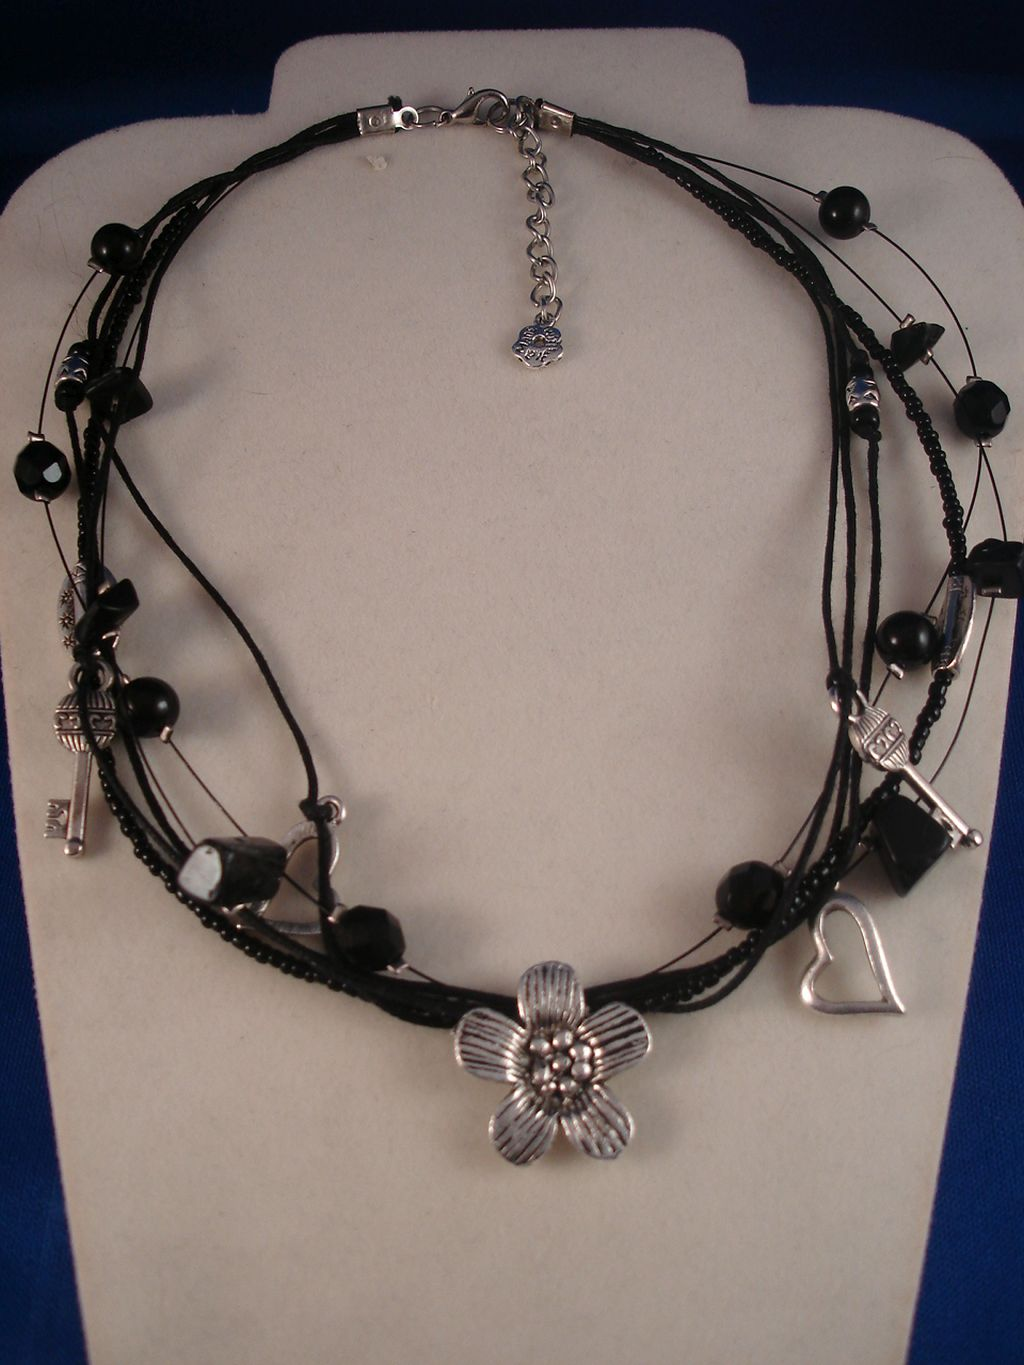 Black Necklace, Genuine Stones, Metal Hearts, Flowers, Keys Charms, Beads, Anti-allergic Jewelry